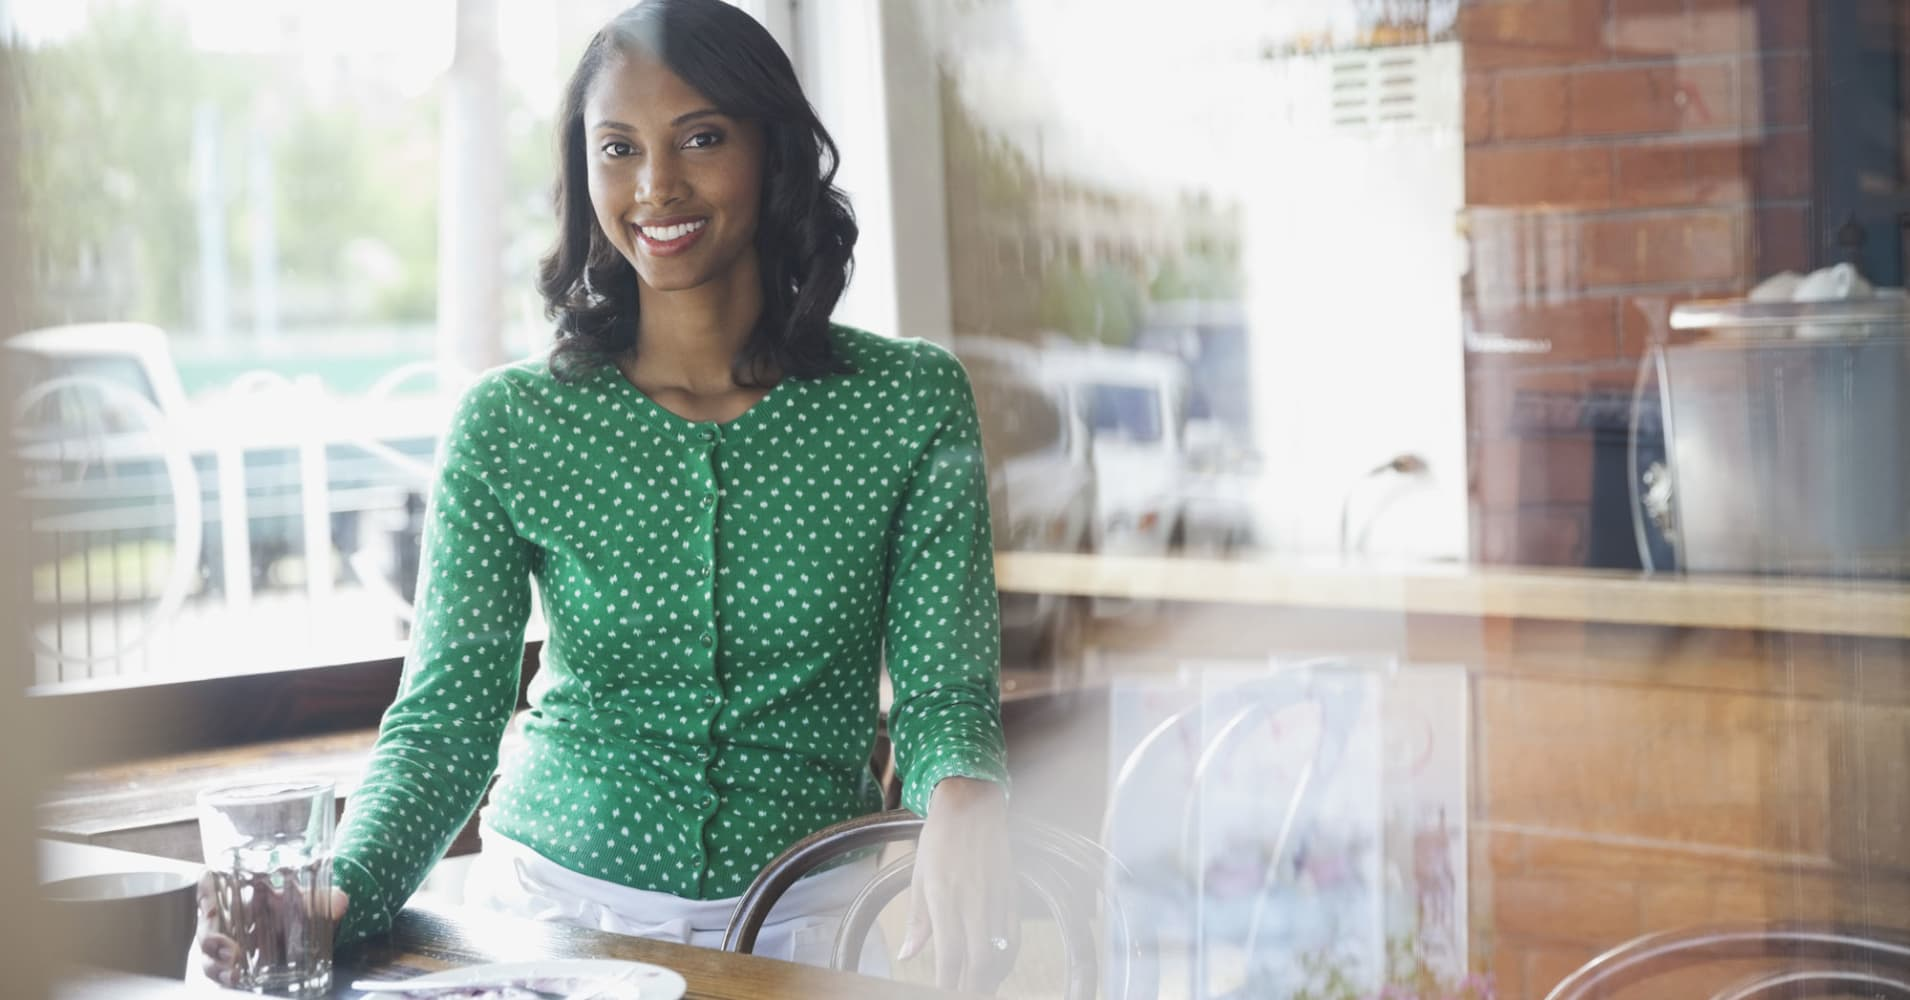 Boss Guide Rise Of Minority Businesses In The Us: Survey